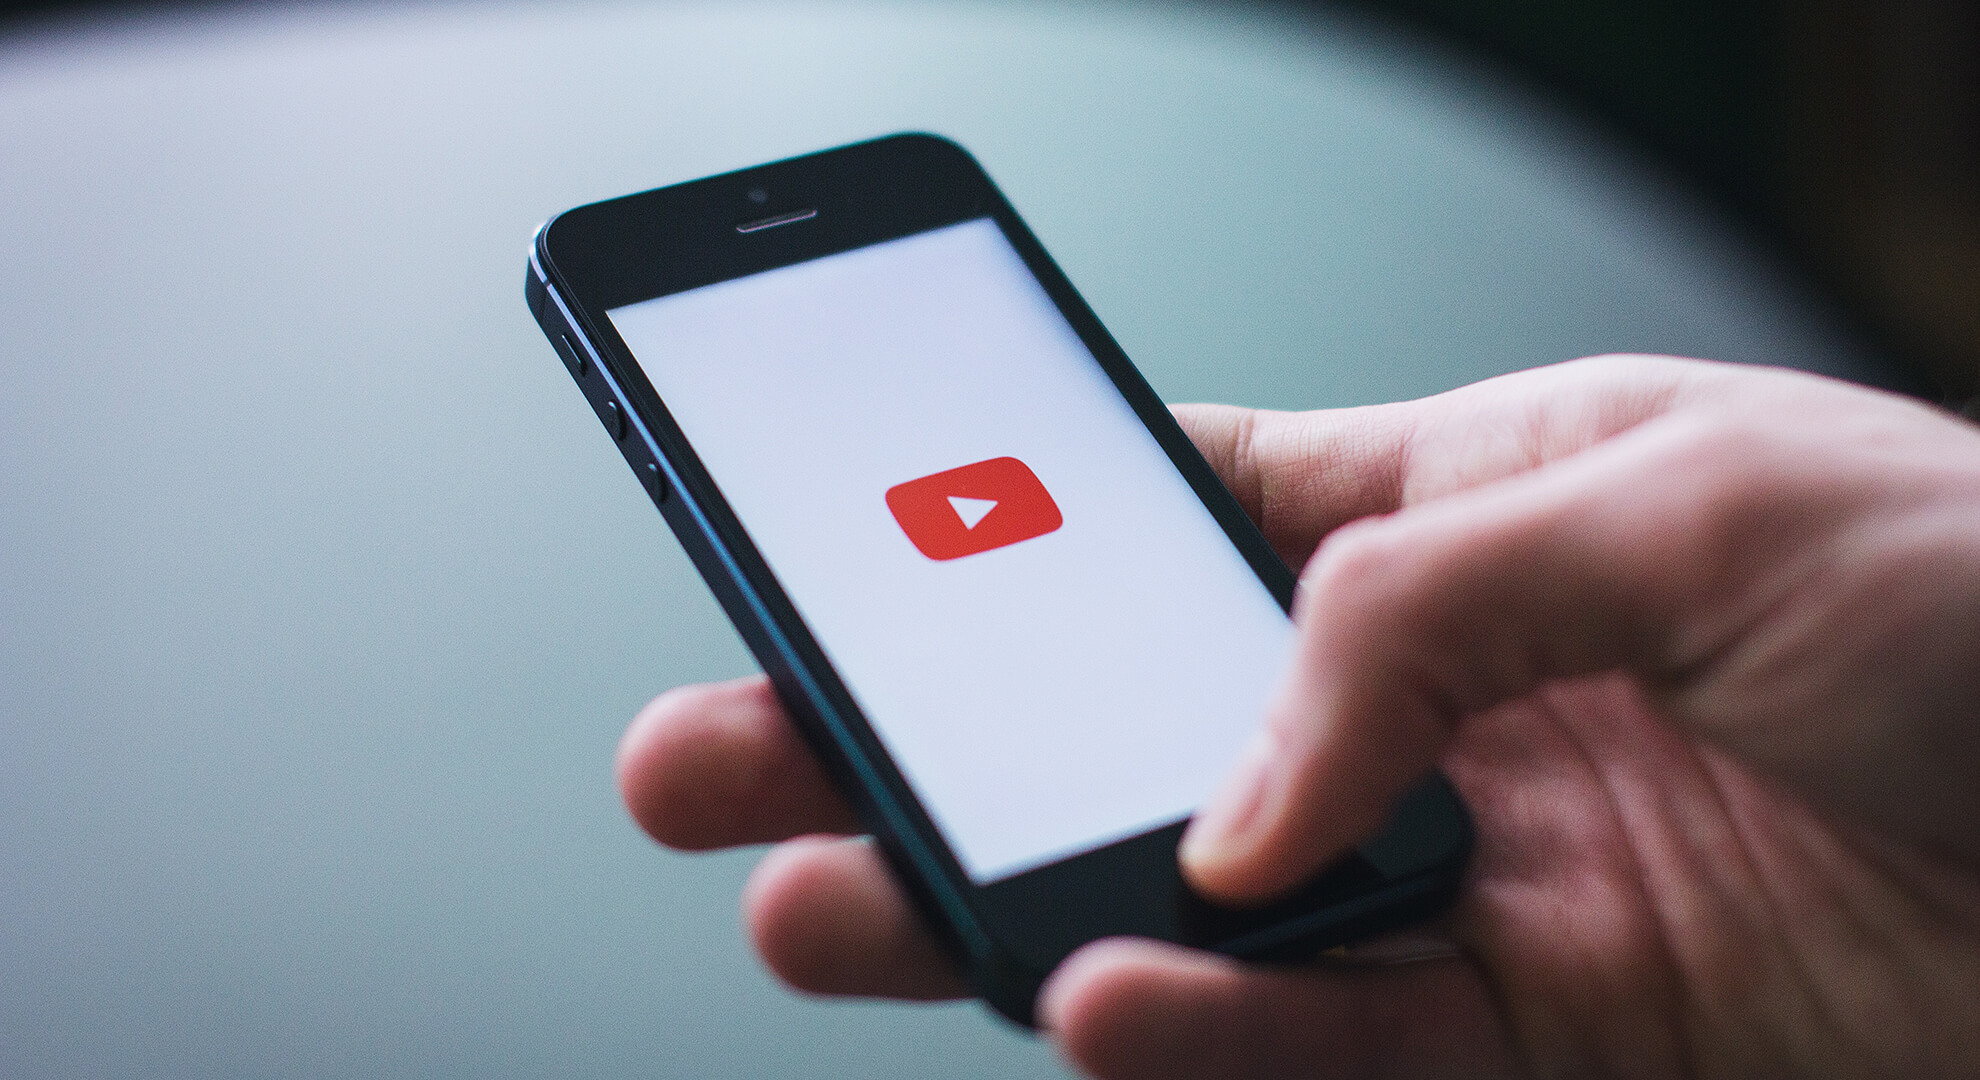 person holding phone and looking at YouTube app